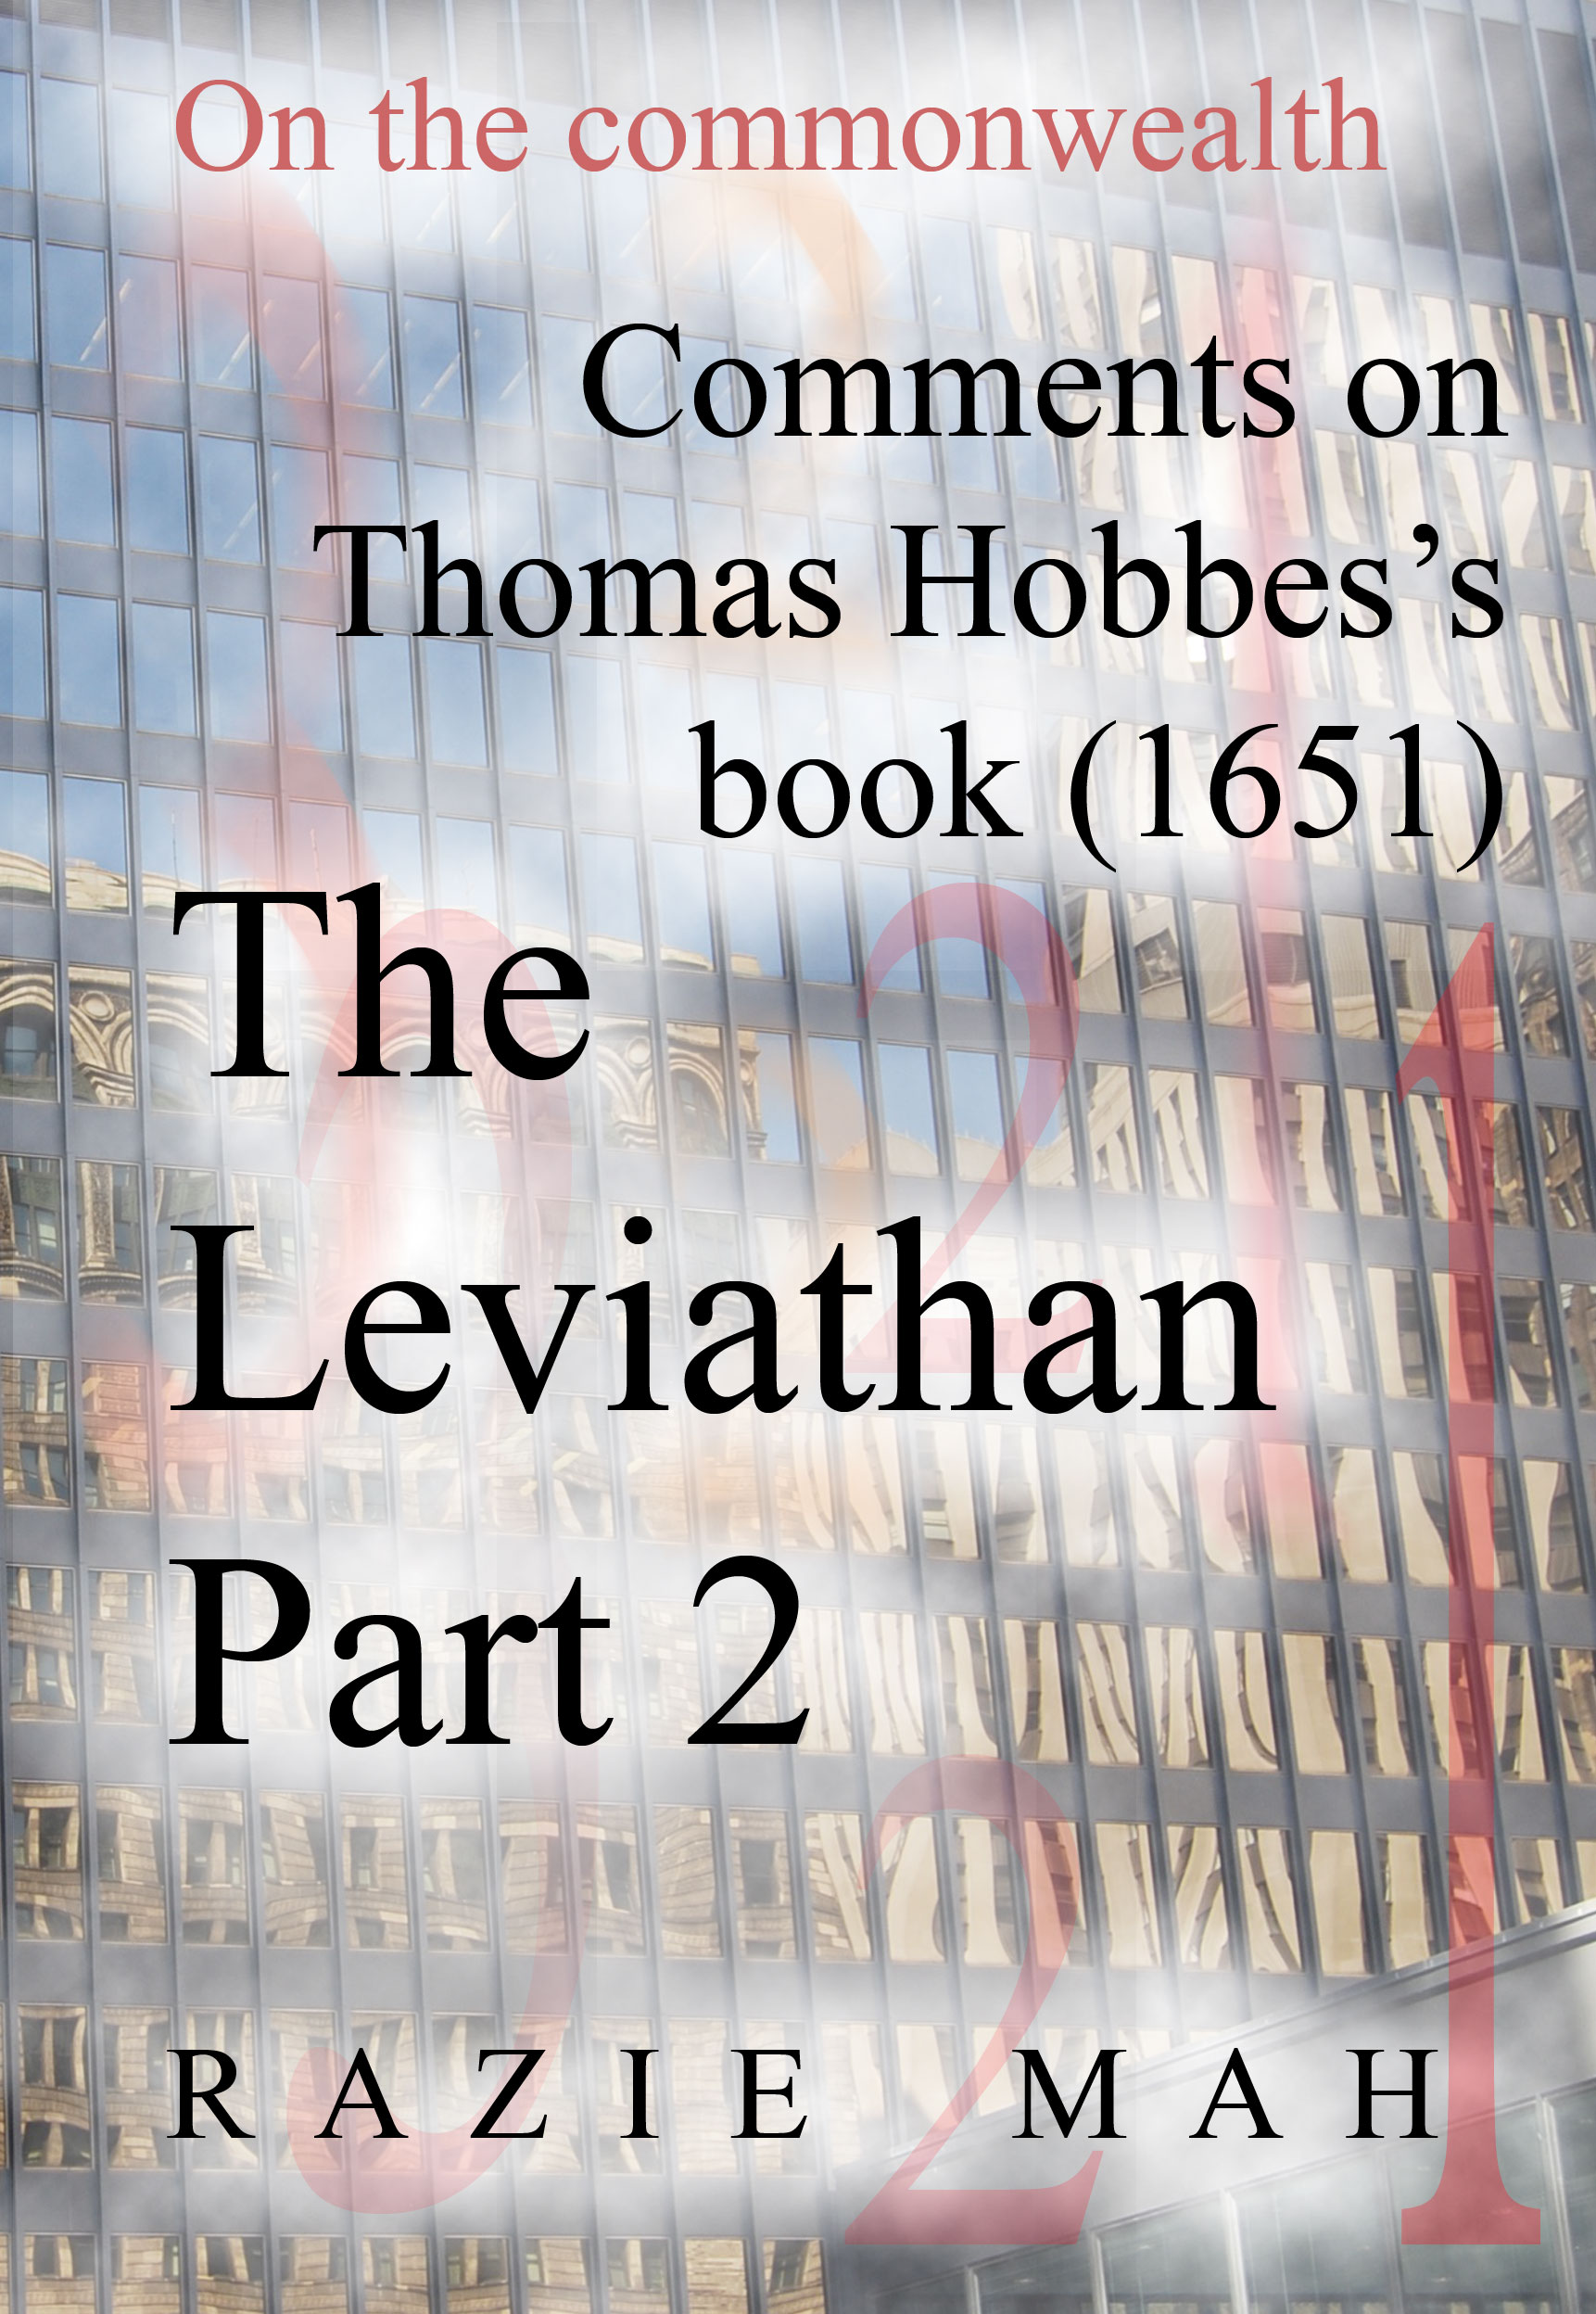 hobbess commonwealth essay Thomas hobbes' leviathan above anything else, thomas hobbes' leviathan is certainly a creation tale and an analysis of human being character the tale starts in a period of commotion and loss of life and through a trip of individual advancement culminates in the institution of a lasting and logical society-the commonwealth-led by a sovereign.